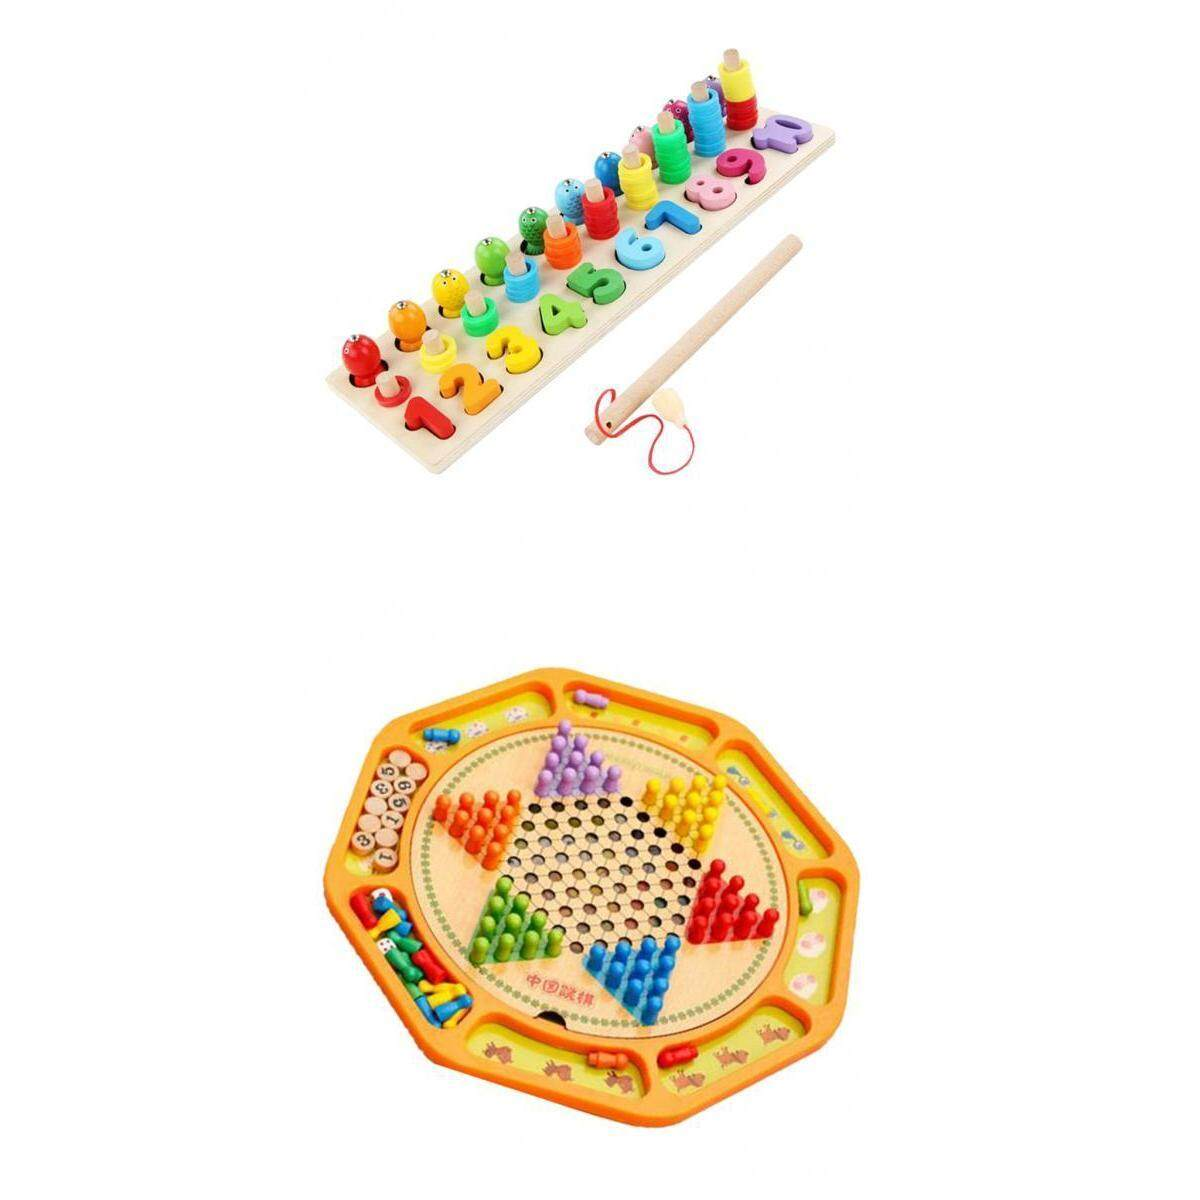 Perfk Chinese Checkers 12 Wooden Chessboard with Wooden Fishing Toy for Kids Play